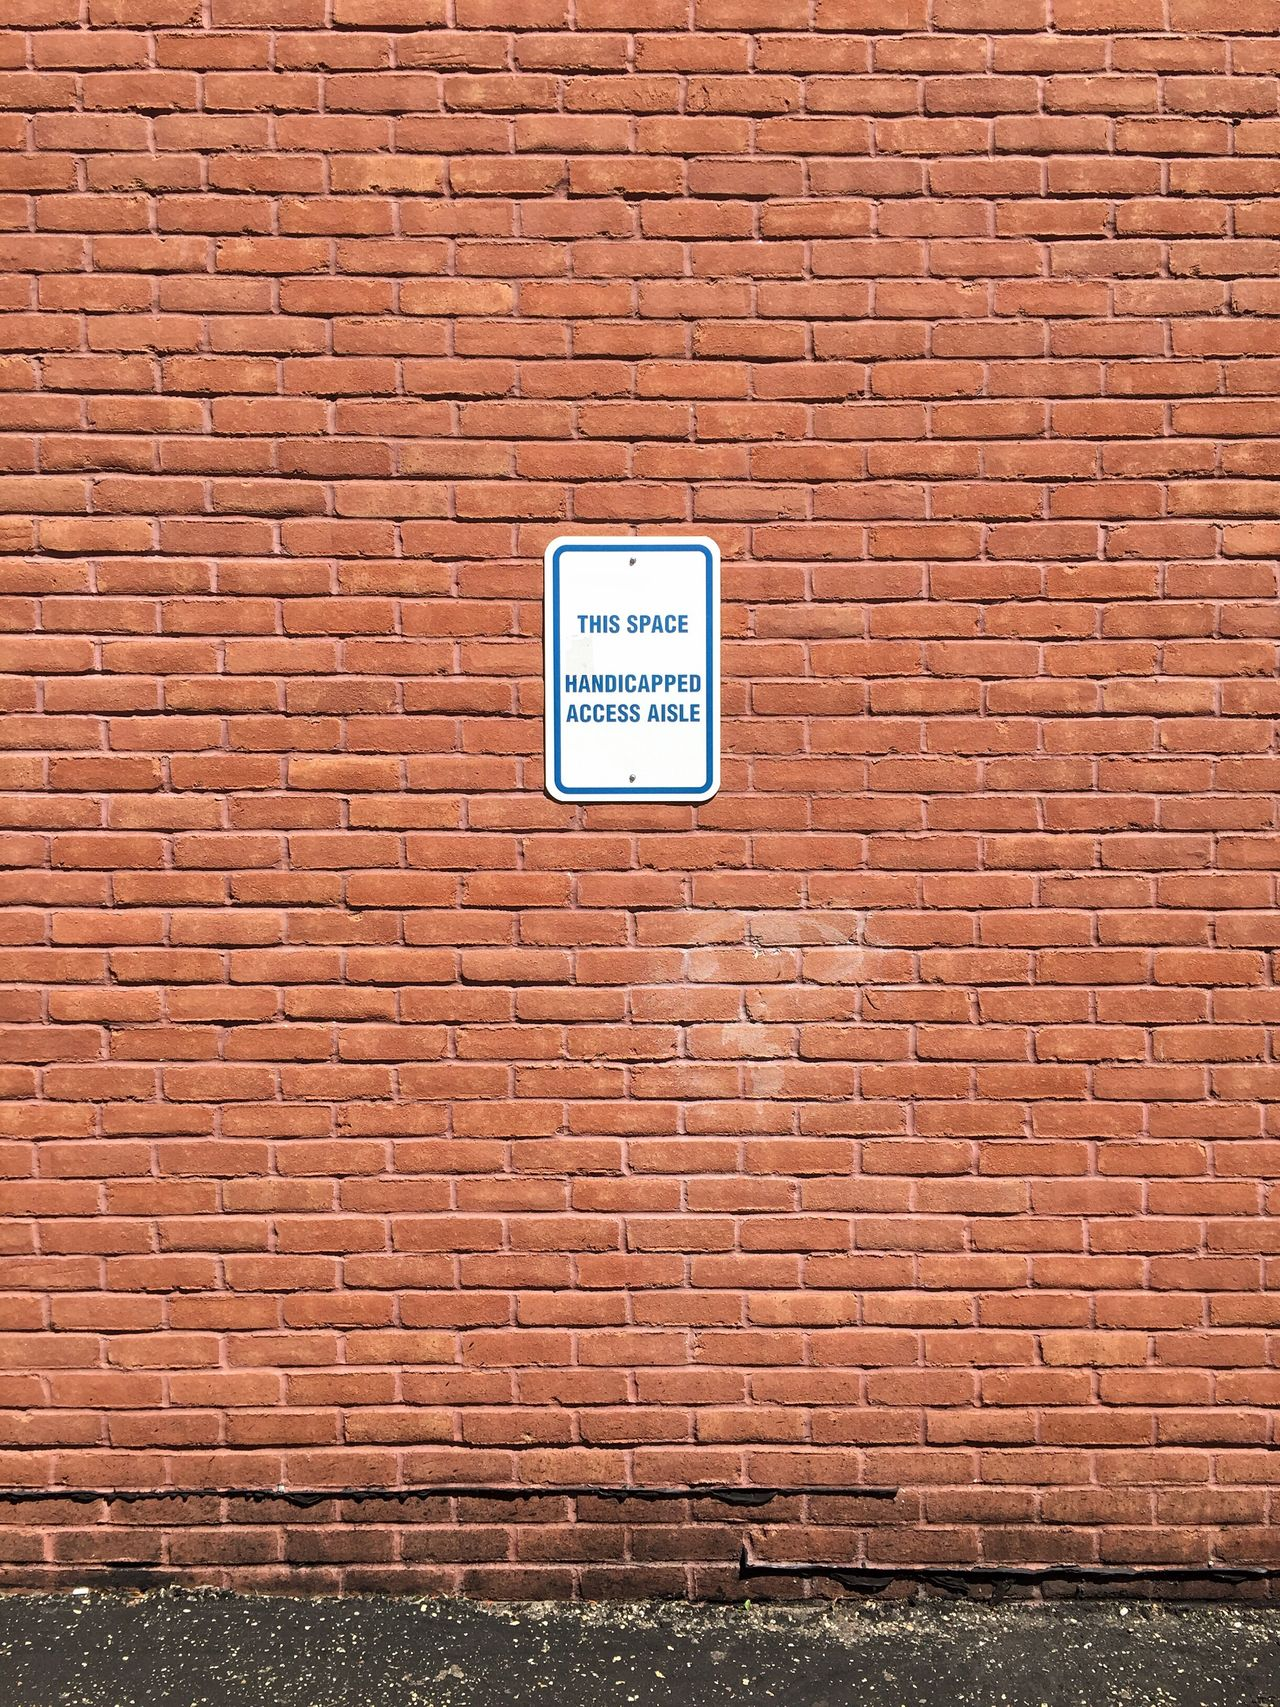 Disabled Access. Parking Lot Park Disabled Person Government Disability Parking Signs Law Accessibili Accessibilité Regulations Minimalist Minimal Minimalism Warm Assist Handicap Parking Outside Exterior Building Wall Brick Handicapped Sign Handicap Car Disabilities Access